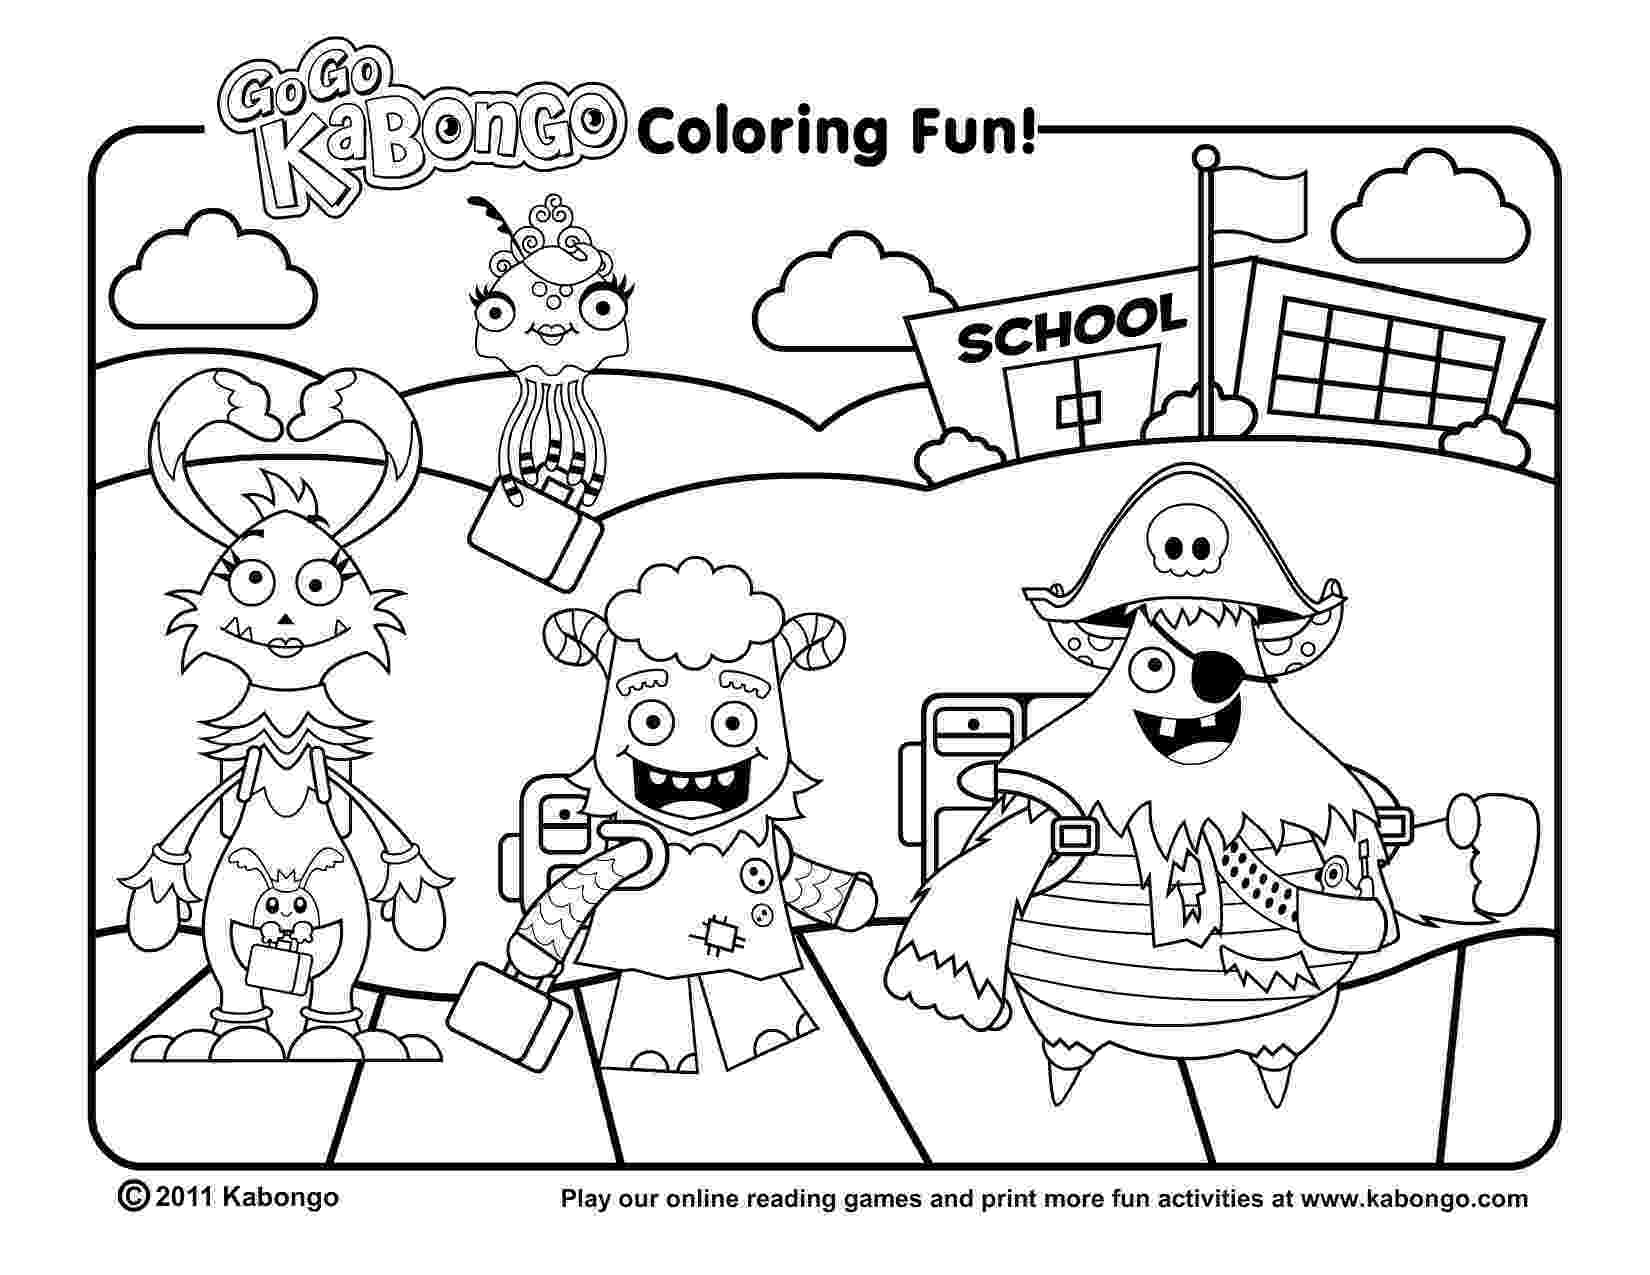 september coloring pages september coloring pages to download and print for free september coloring pages 1 1